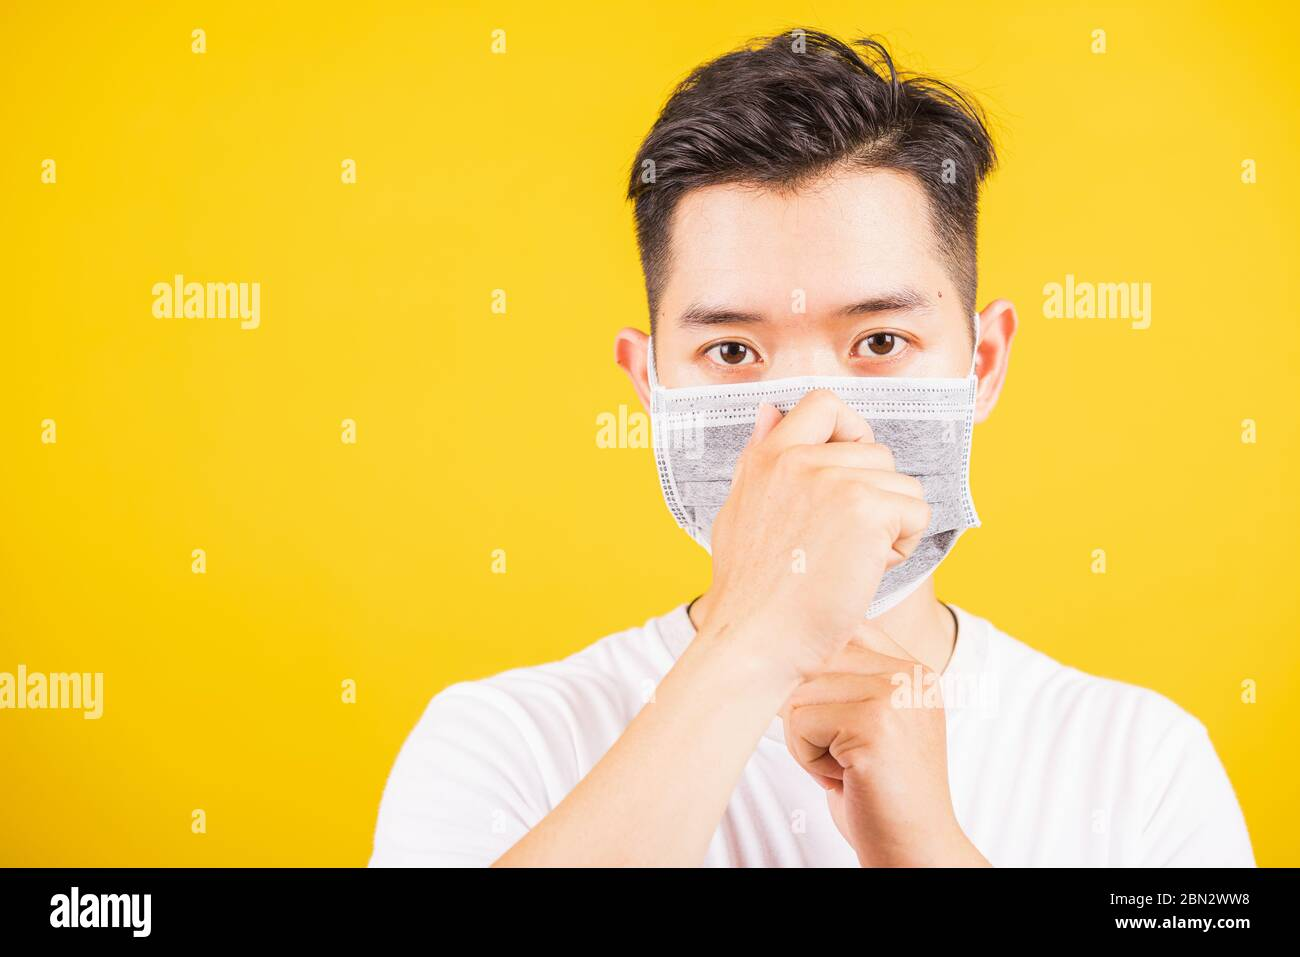 Portrait Asian handsome young man wearing face mask protective against coronavirus or COVID-19 virus showing demonstrating correct step, studio shot i Stock Photo